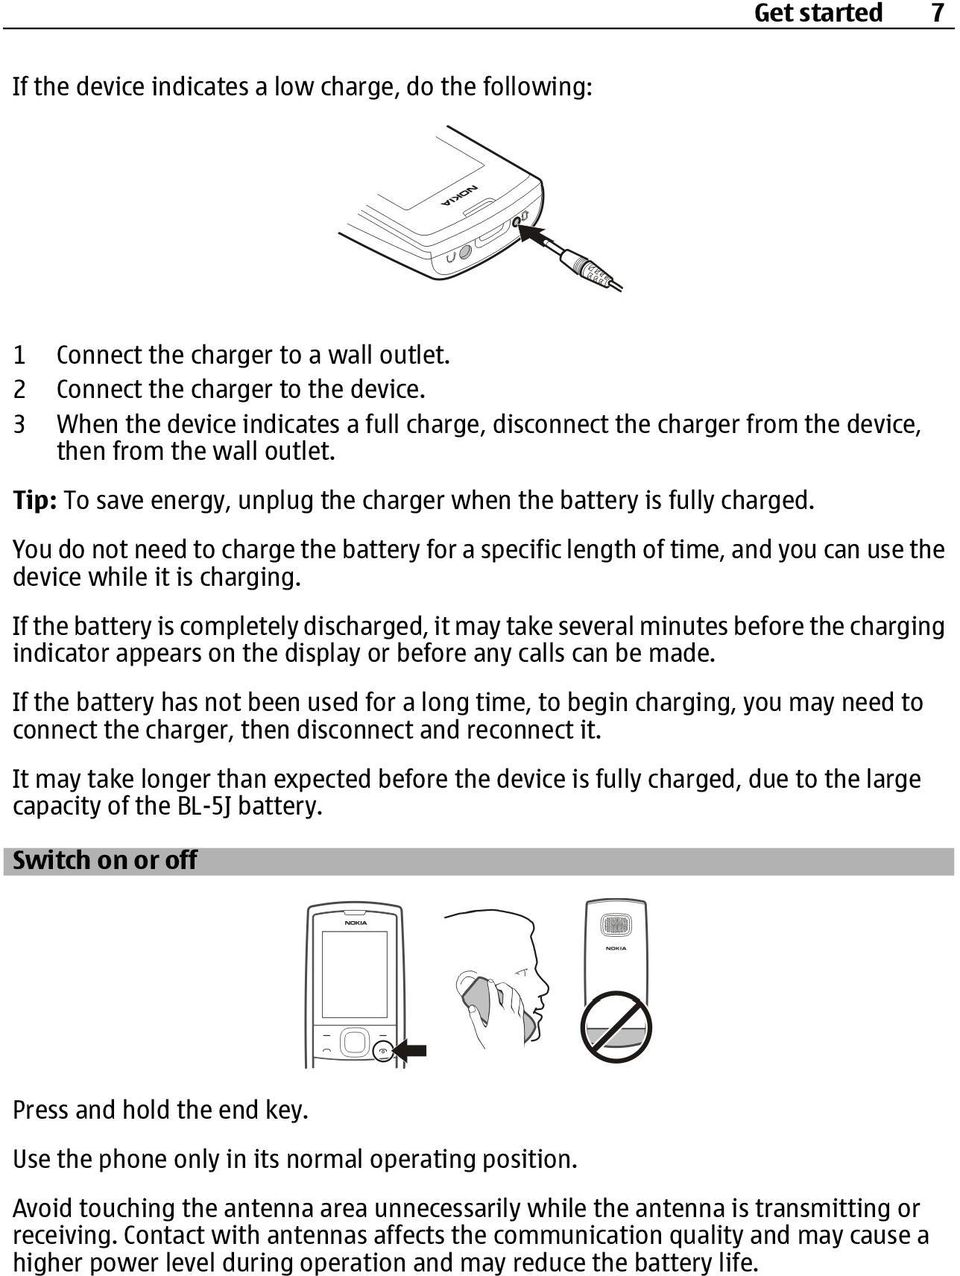 You do not need to charge the battery for a specific length of time, and you can use the device while it is charging.